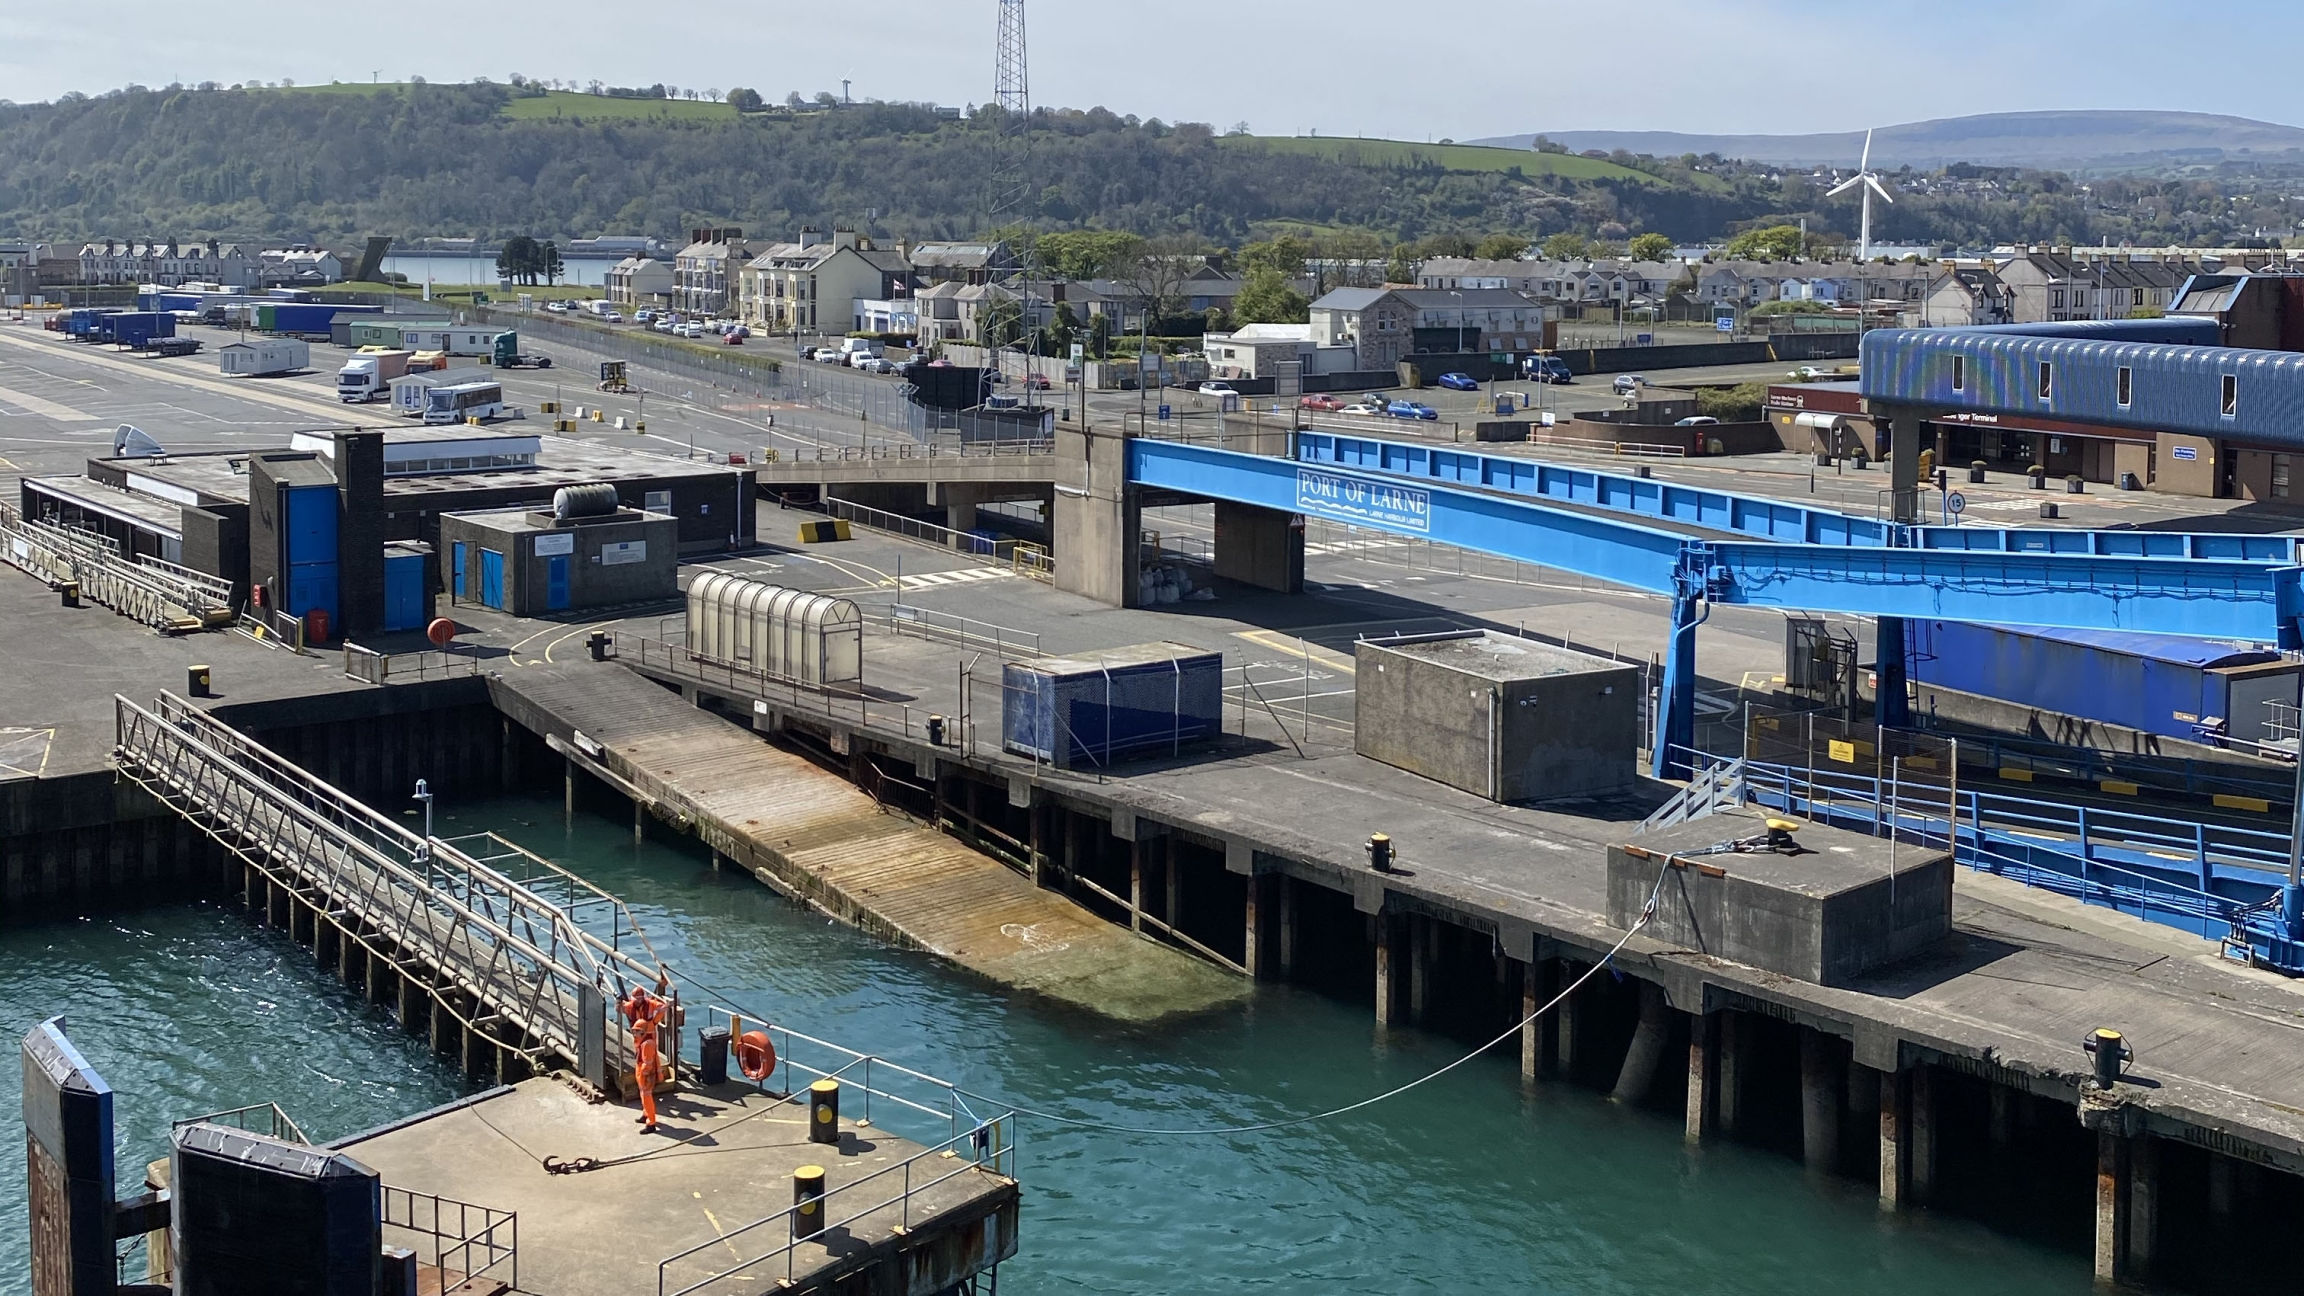 Larne port stretches out into the waters with shipping containers.